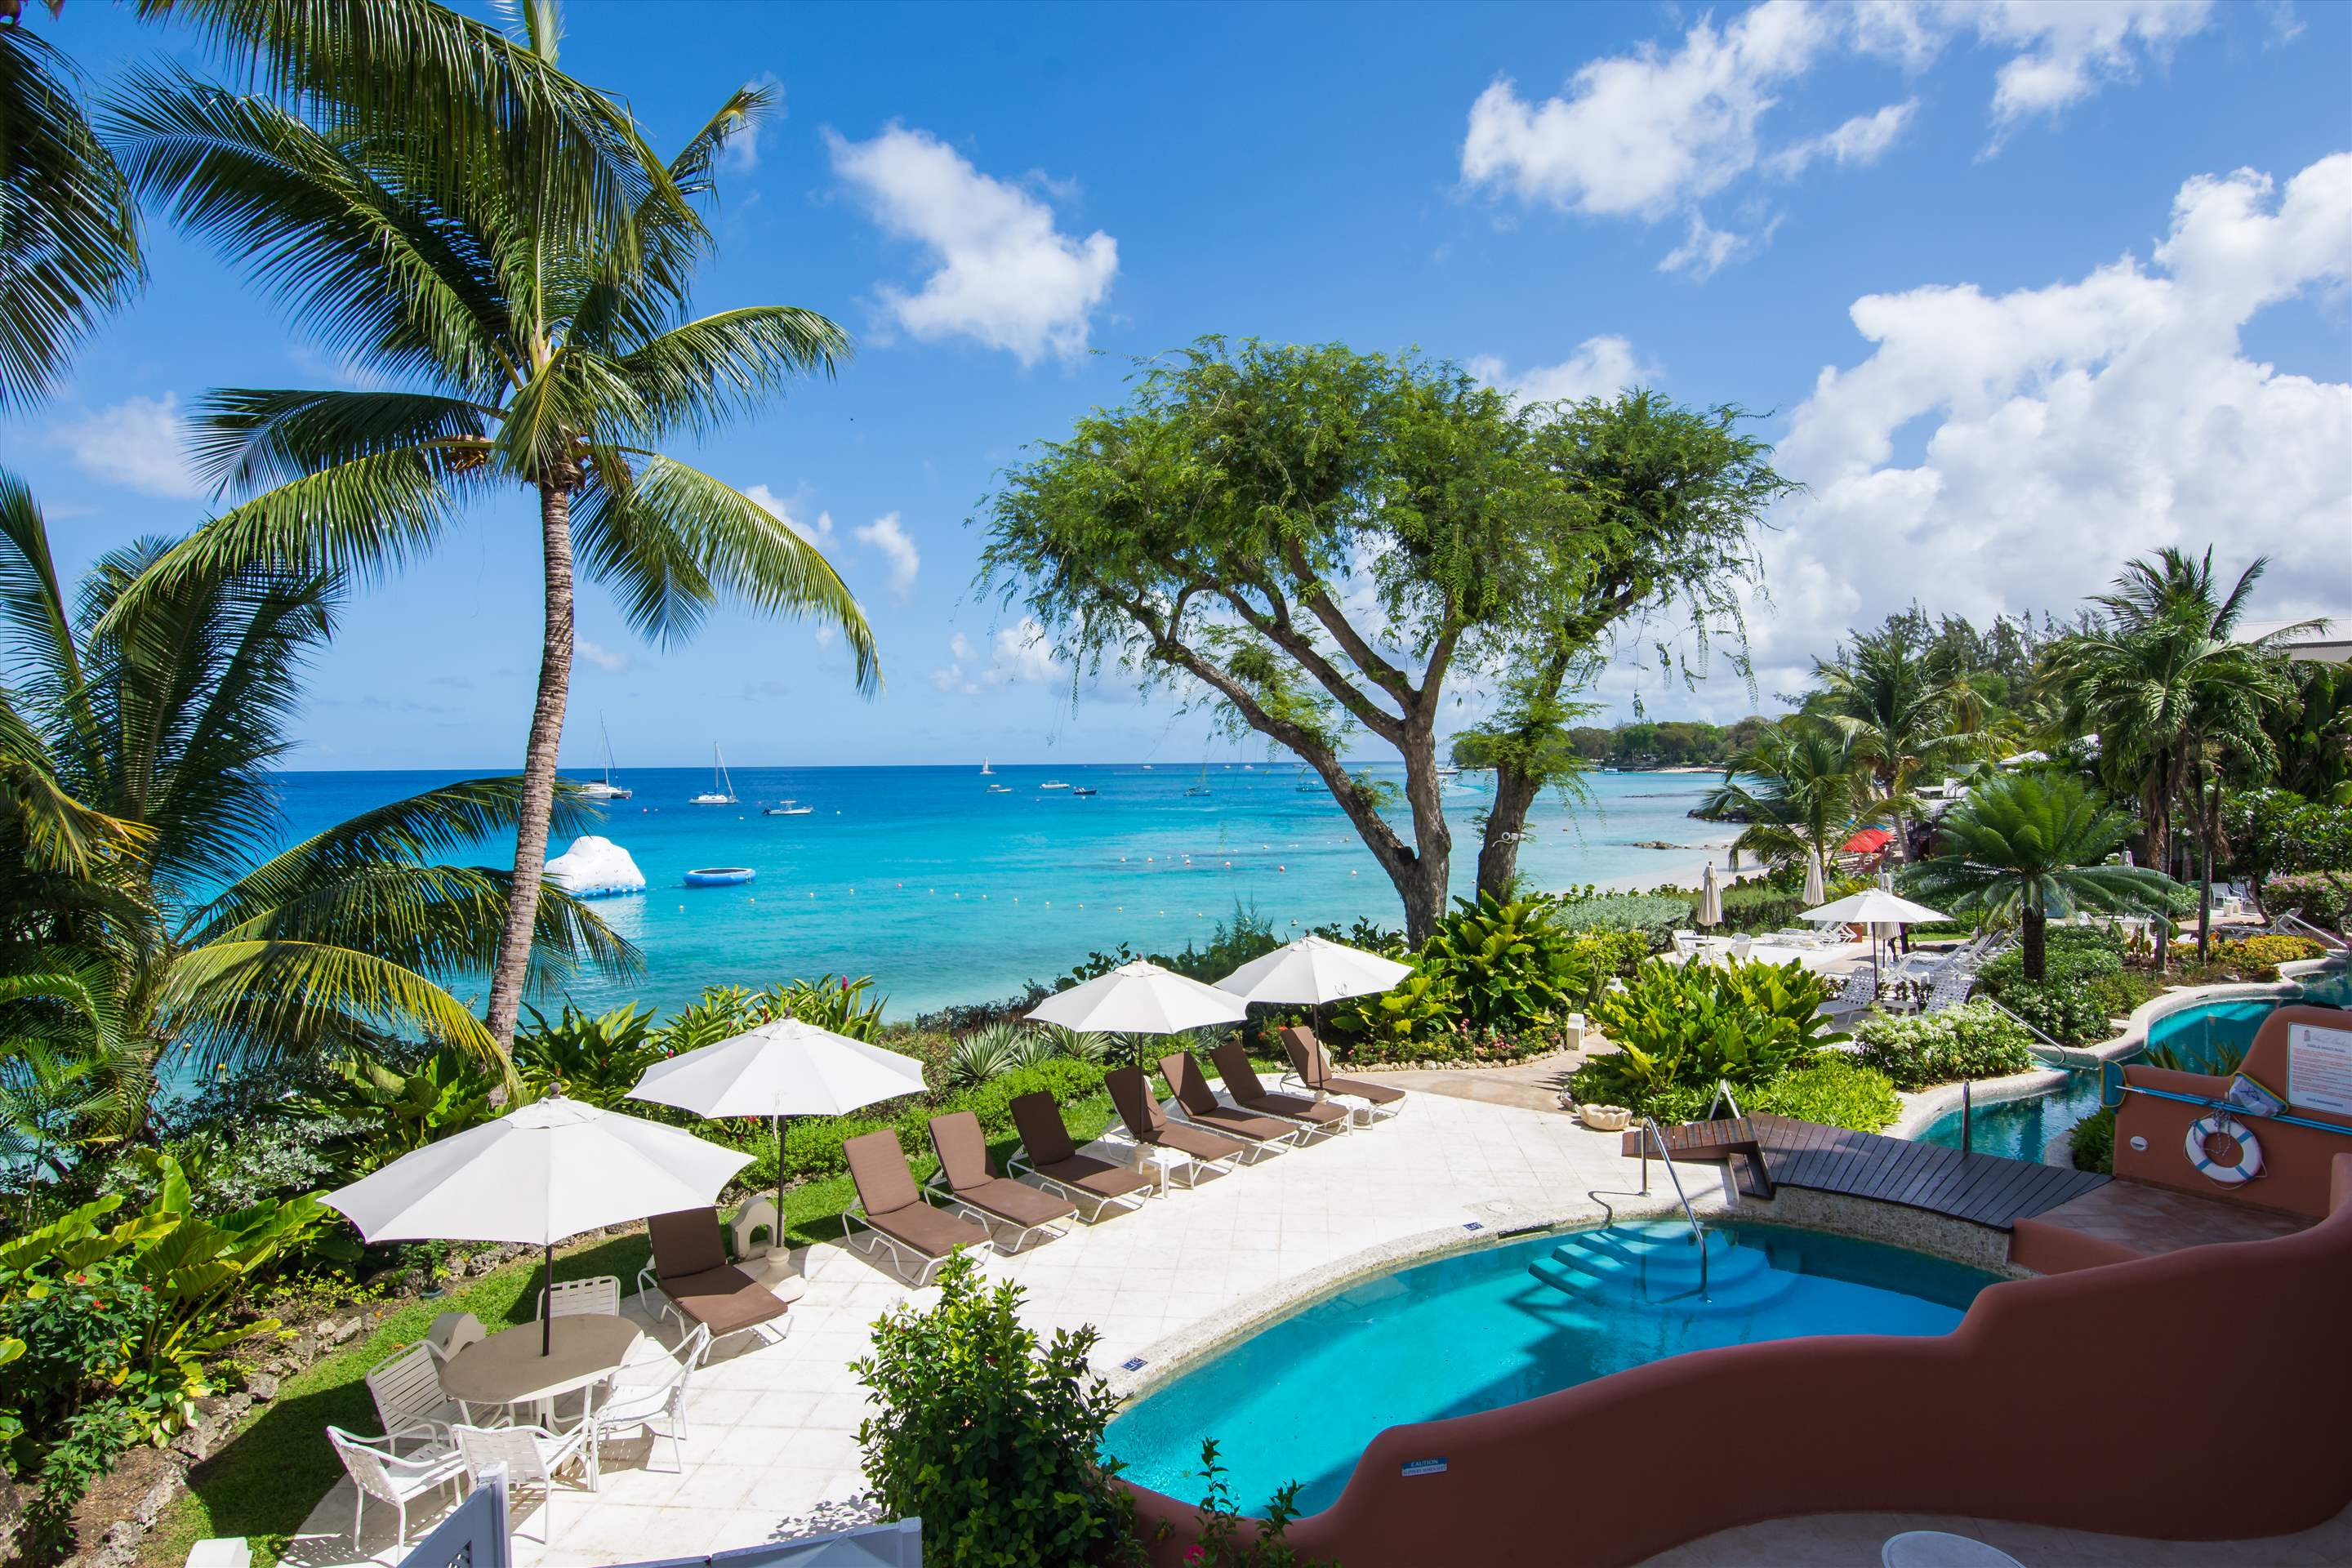 Villas on the Beach 201 , 2 bedroom, 2 bedroom apartment in St. James & West Coast, Barbados Photo #14